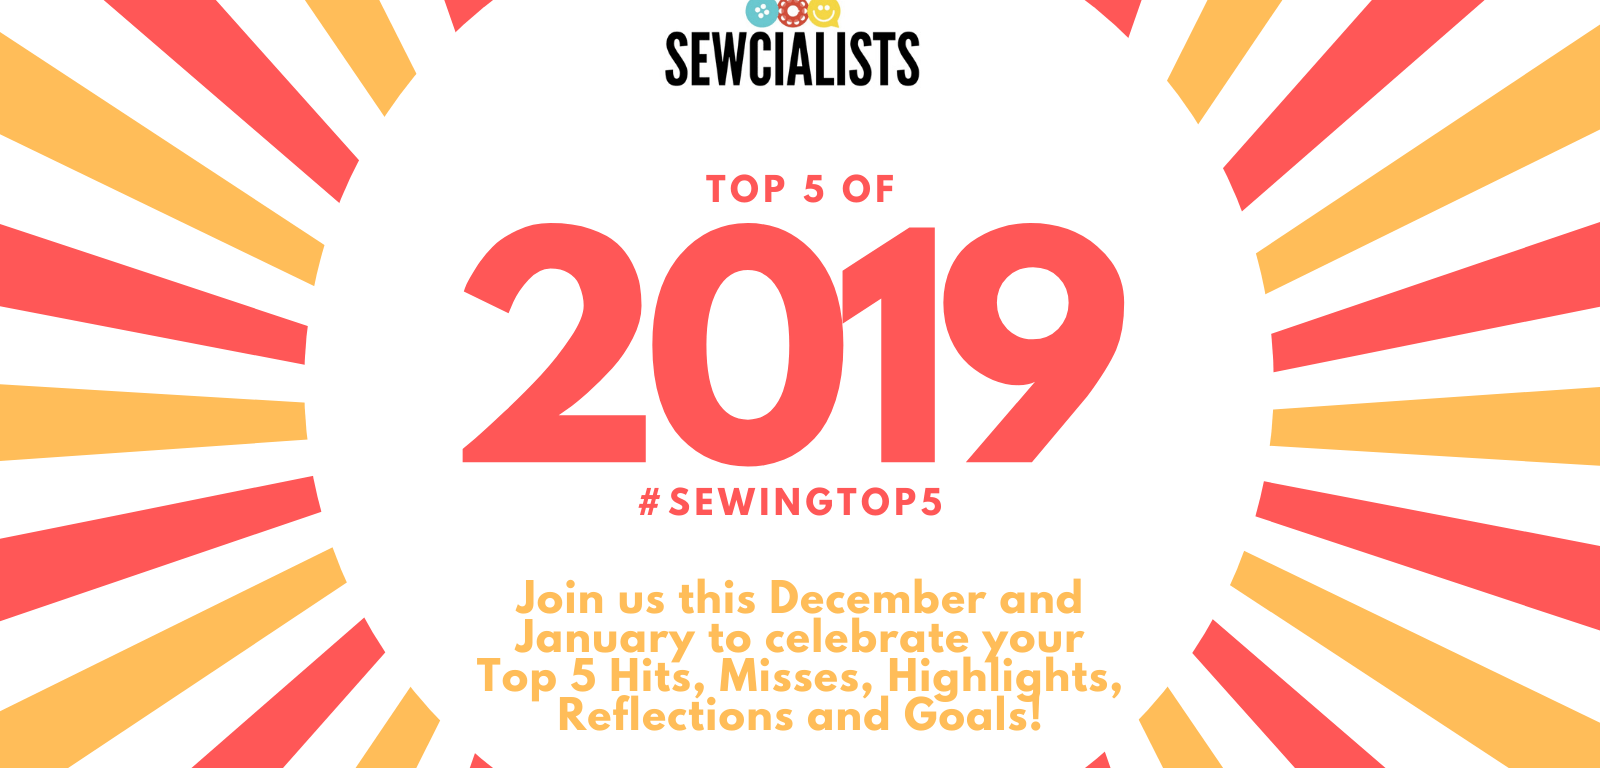 Sewcialists Top 5 of 2019 #sewingtop5